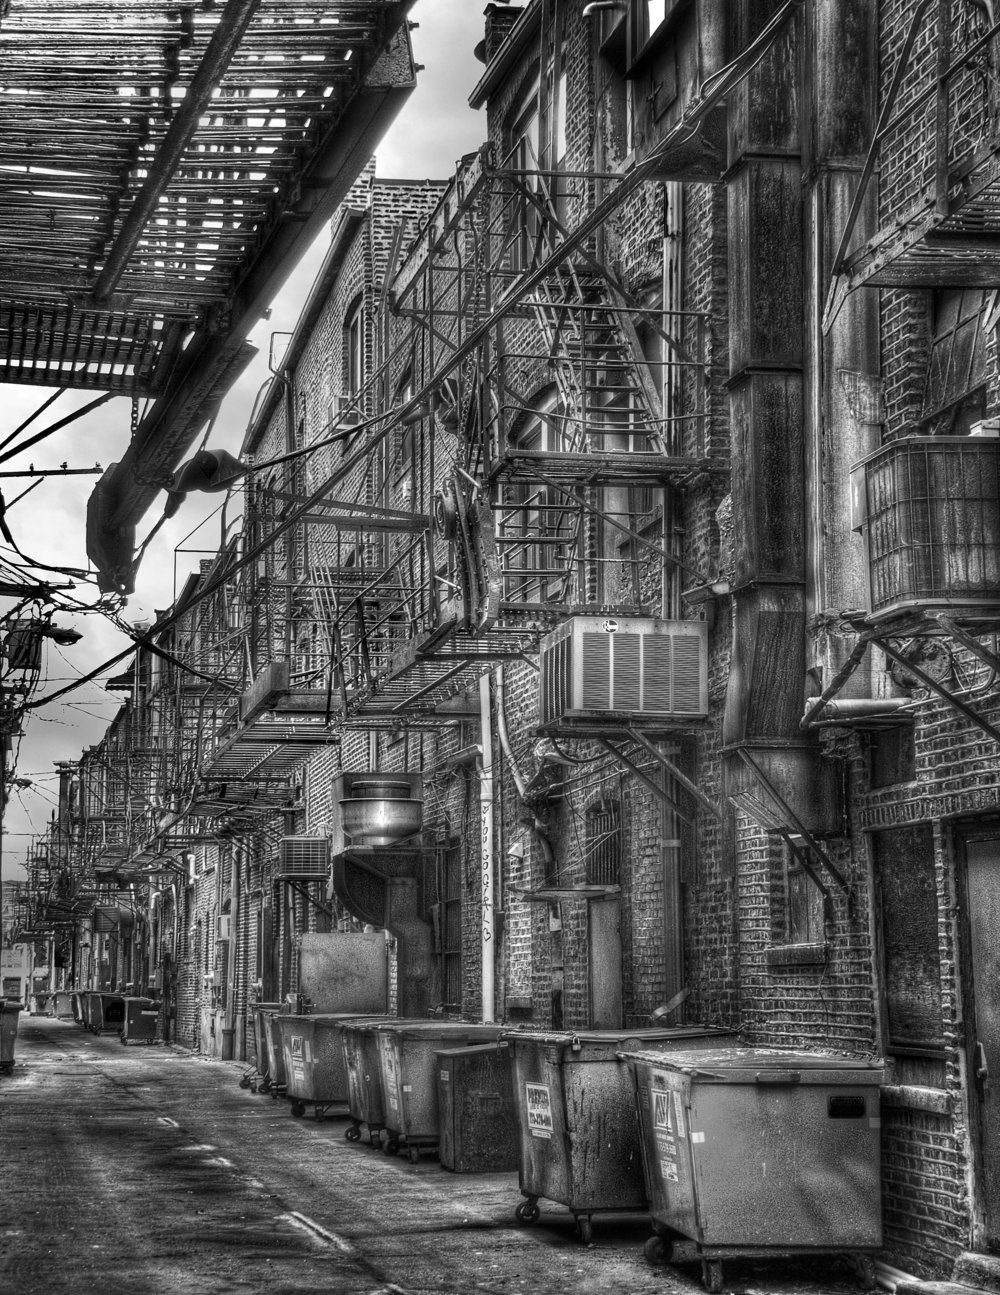 Chinatown Alley by Jay Spilker